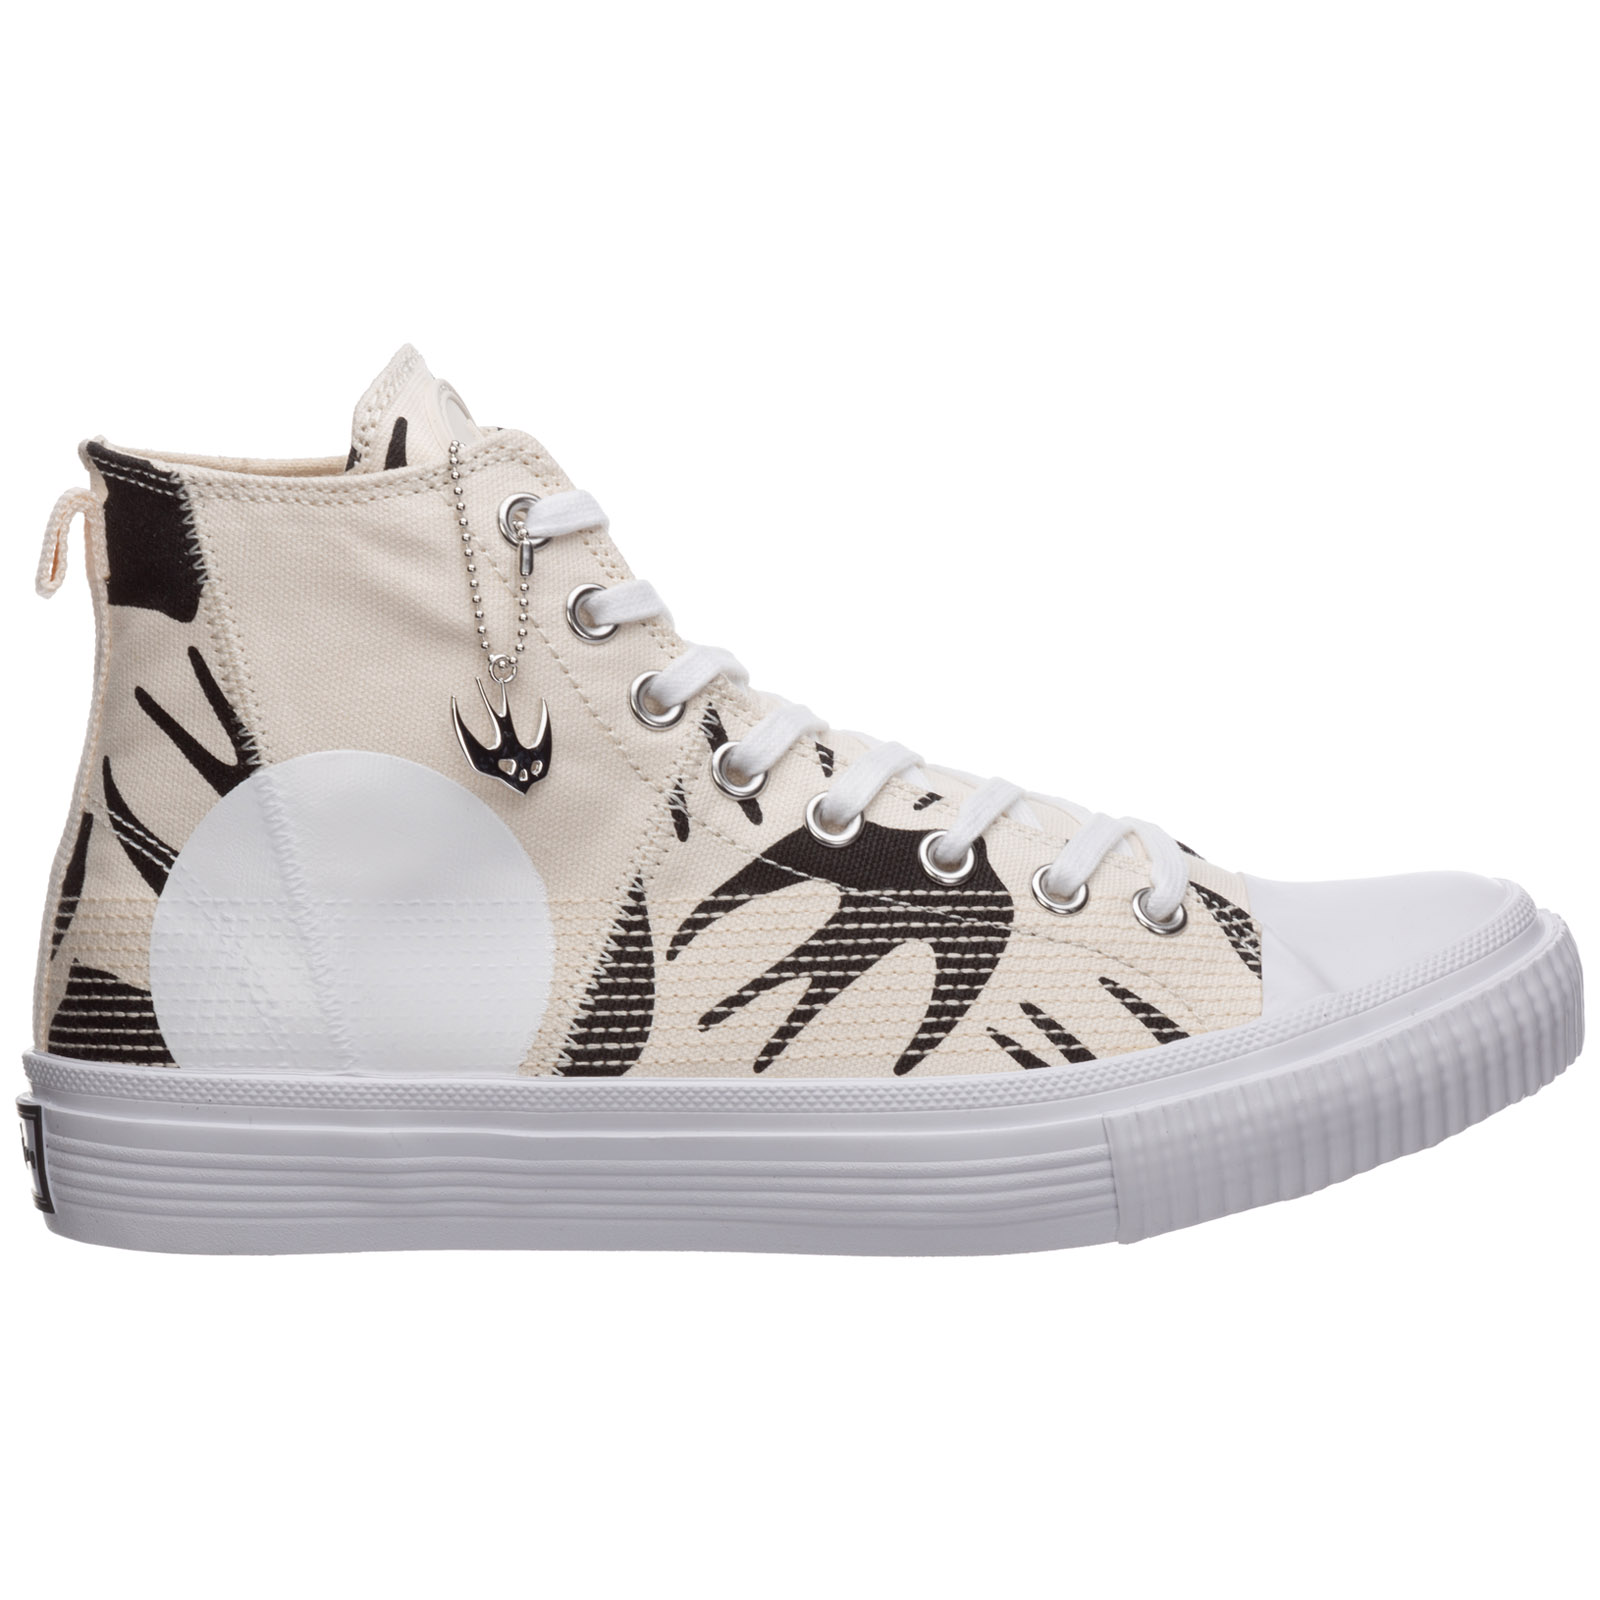 Mcq By Alexander Mcqueen MEN'S SHOES HIGH TOP TRAINERS SNEAKERS SWALLOW CUT UP